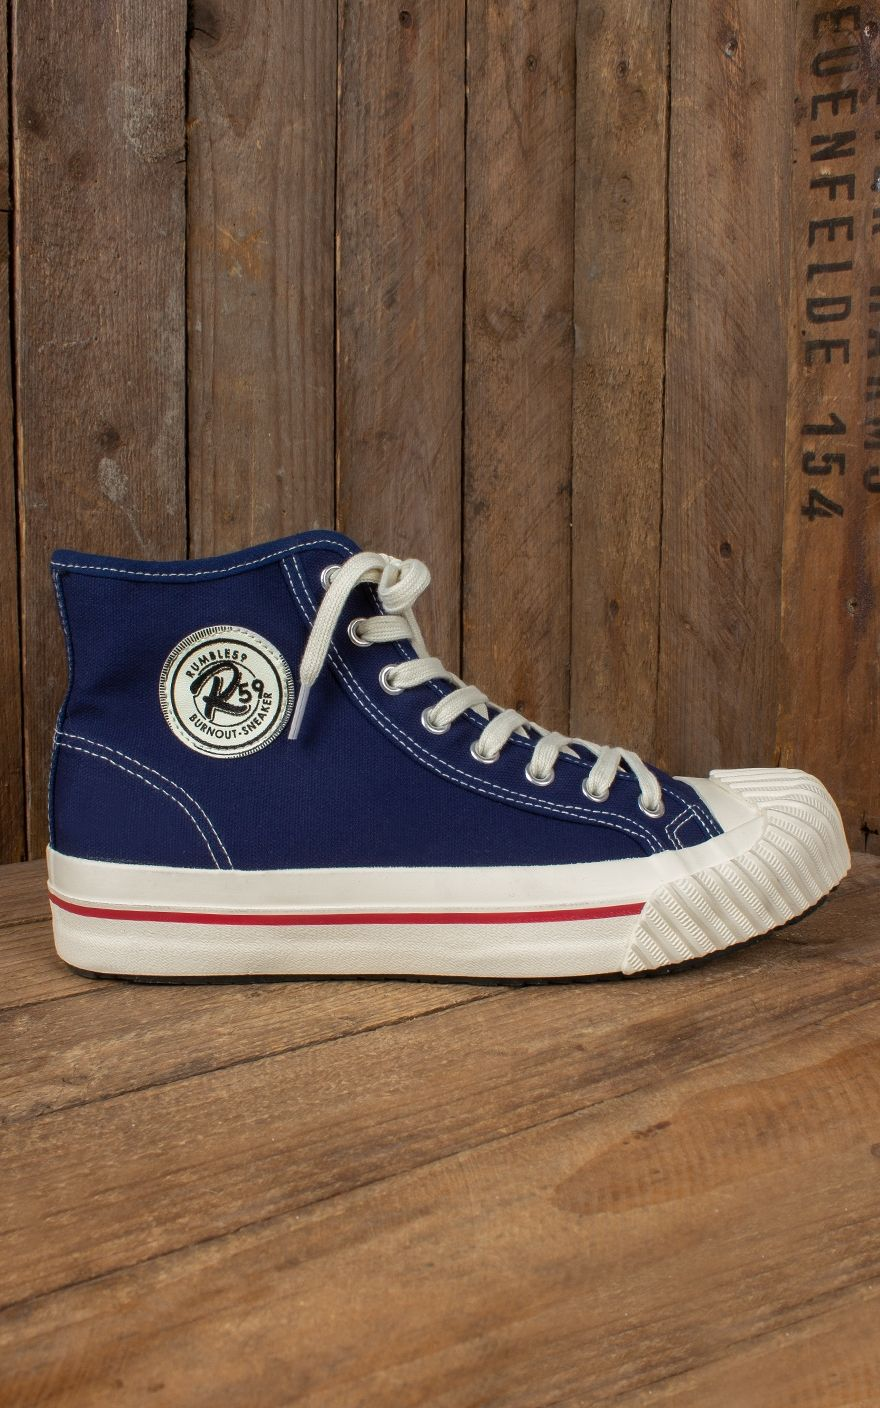 Rumble59 Rumble59 Burnout Marine Blue Rumble59 Marine Sneaker Burnout Sneaker Blue Yb6gf7y